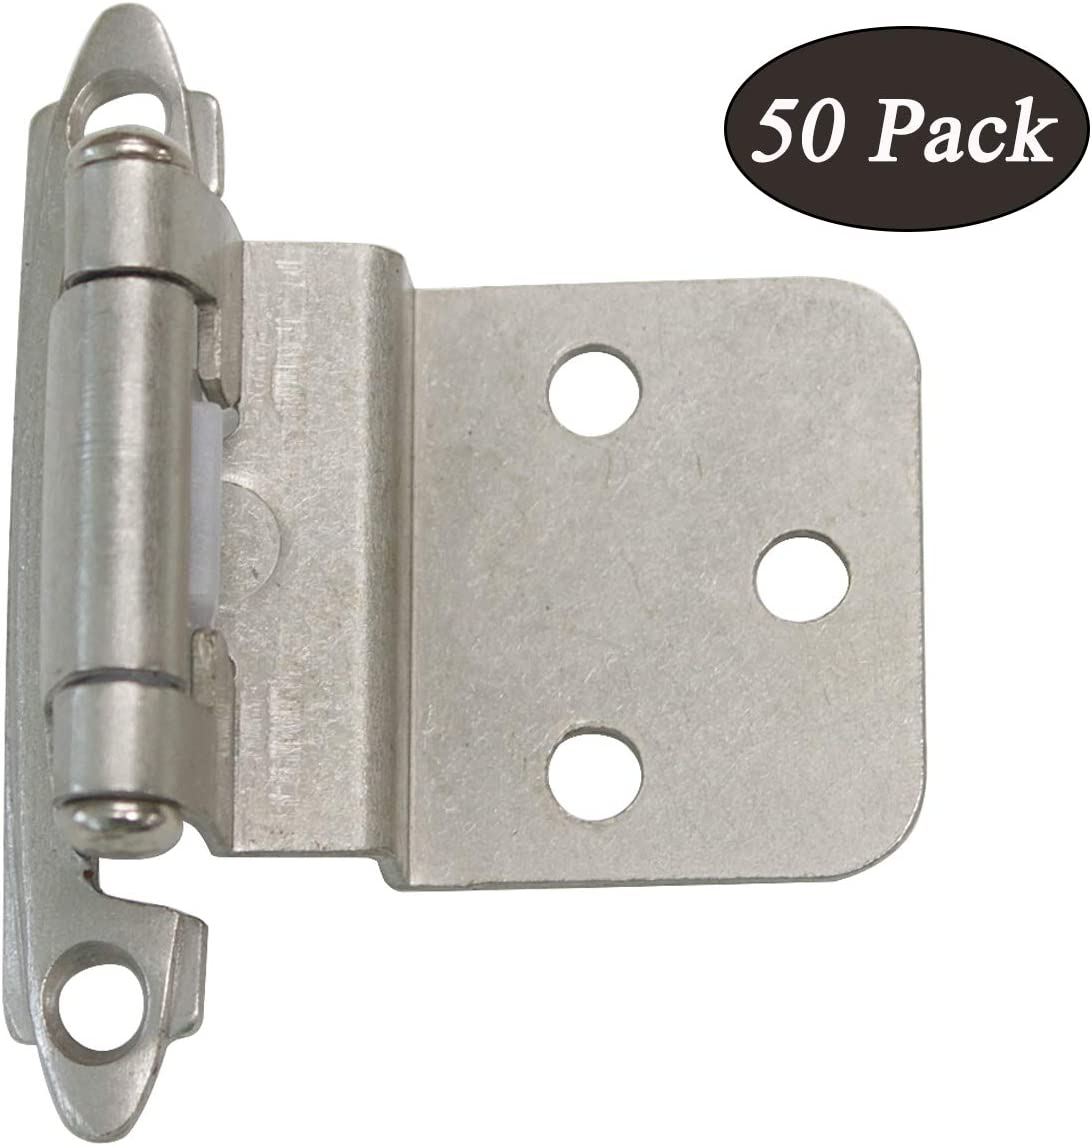 """50 PCS Probrico HMCH198-SN Decorative Self Closing Face Mount Kitchen Cabinet Hinges Step 3/8""""in Overlay Brushed Satin Nickel"""